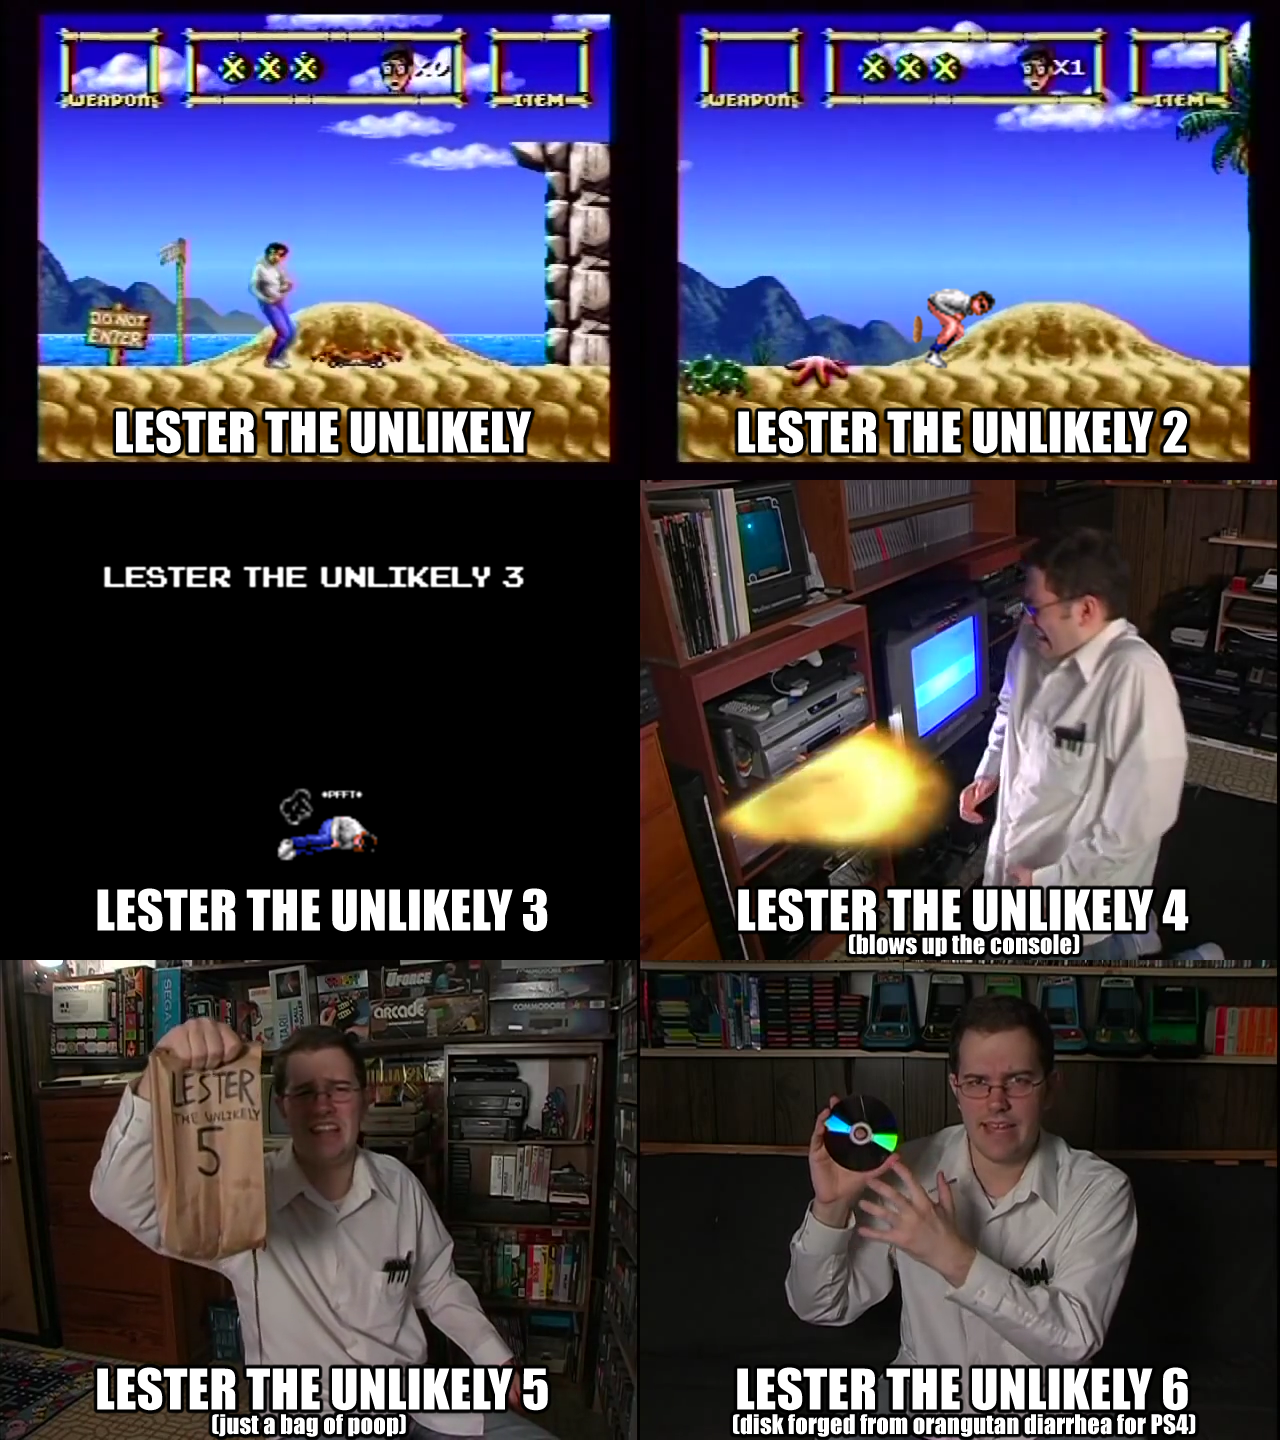 the lester the unlikely series